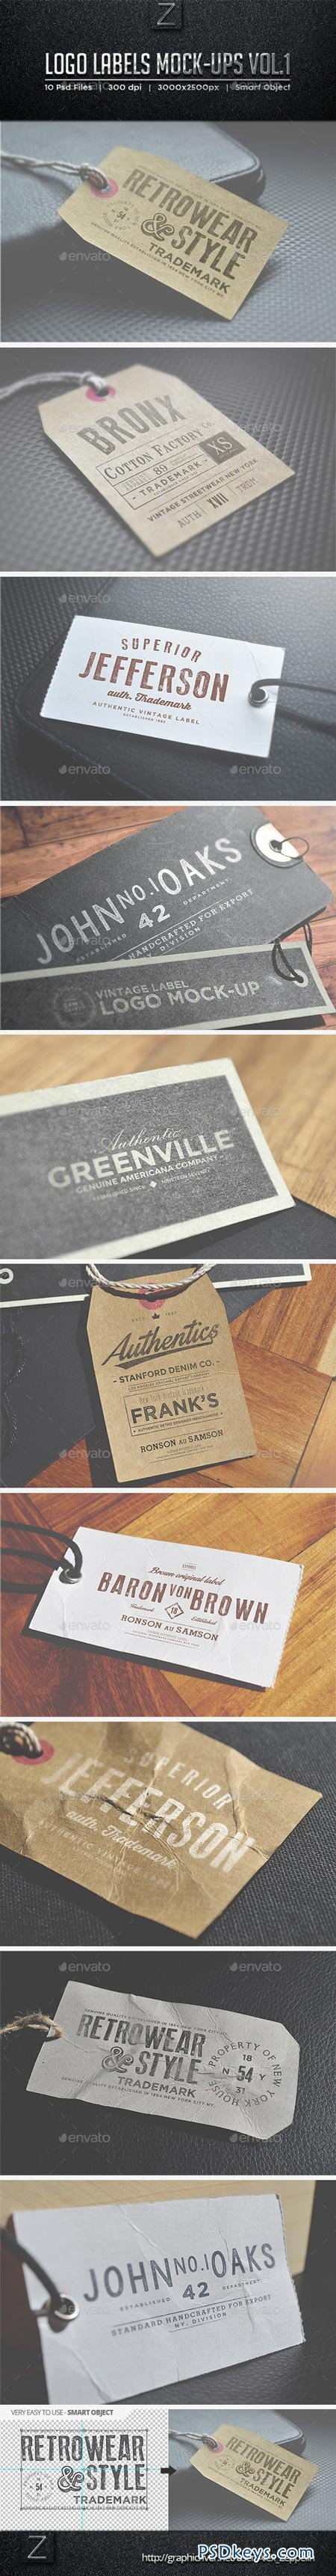 Logo Labels Mock-ups Vol.1 9059510